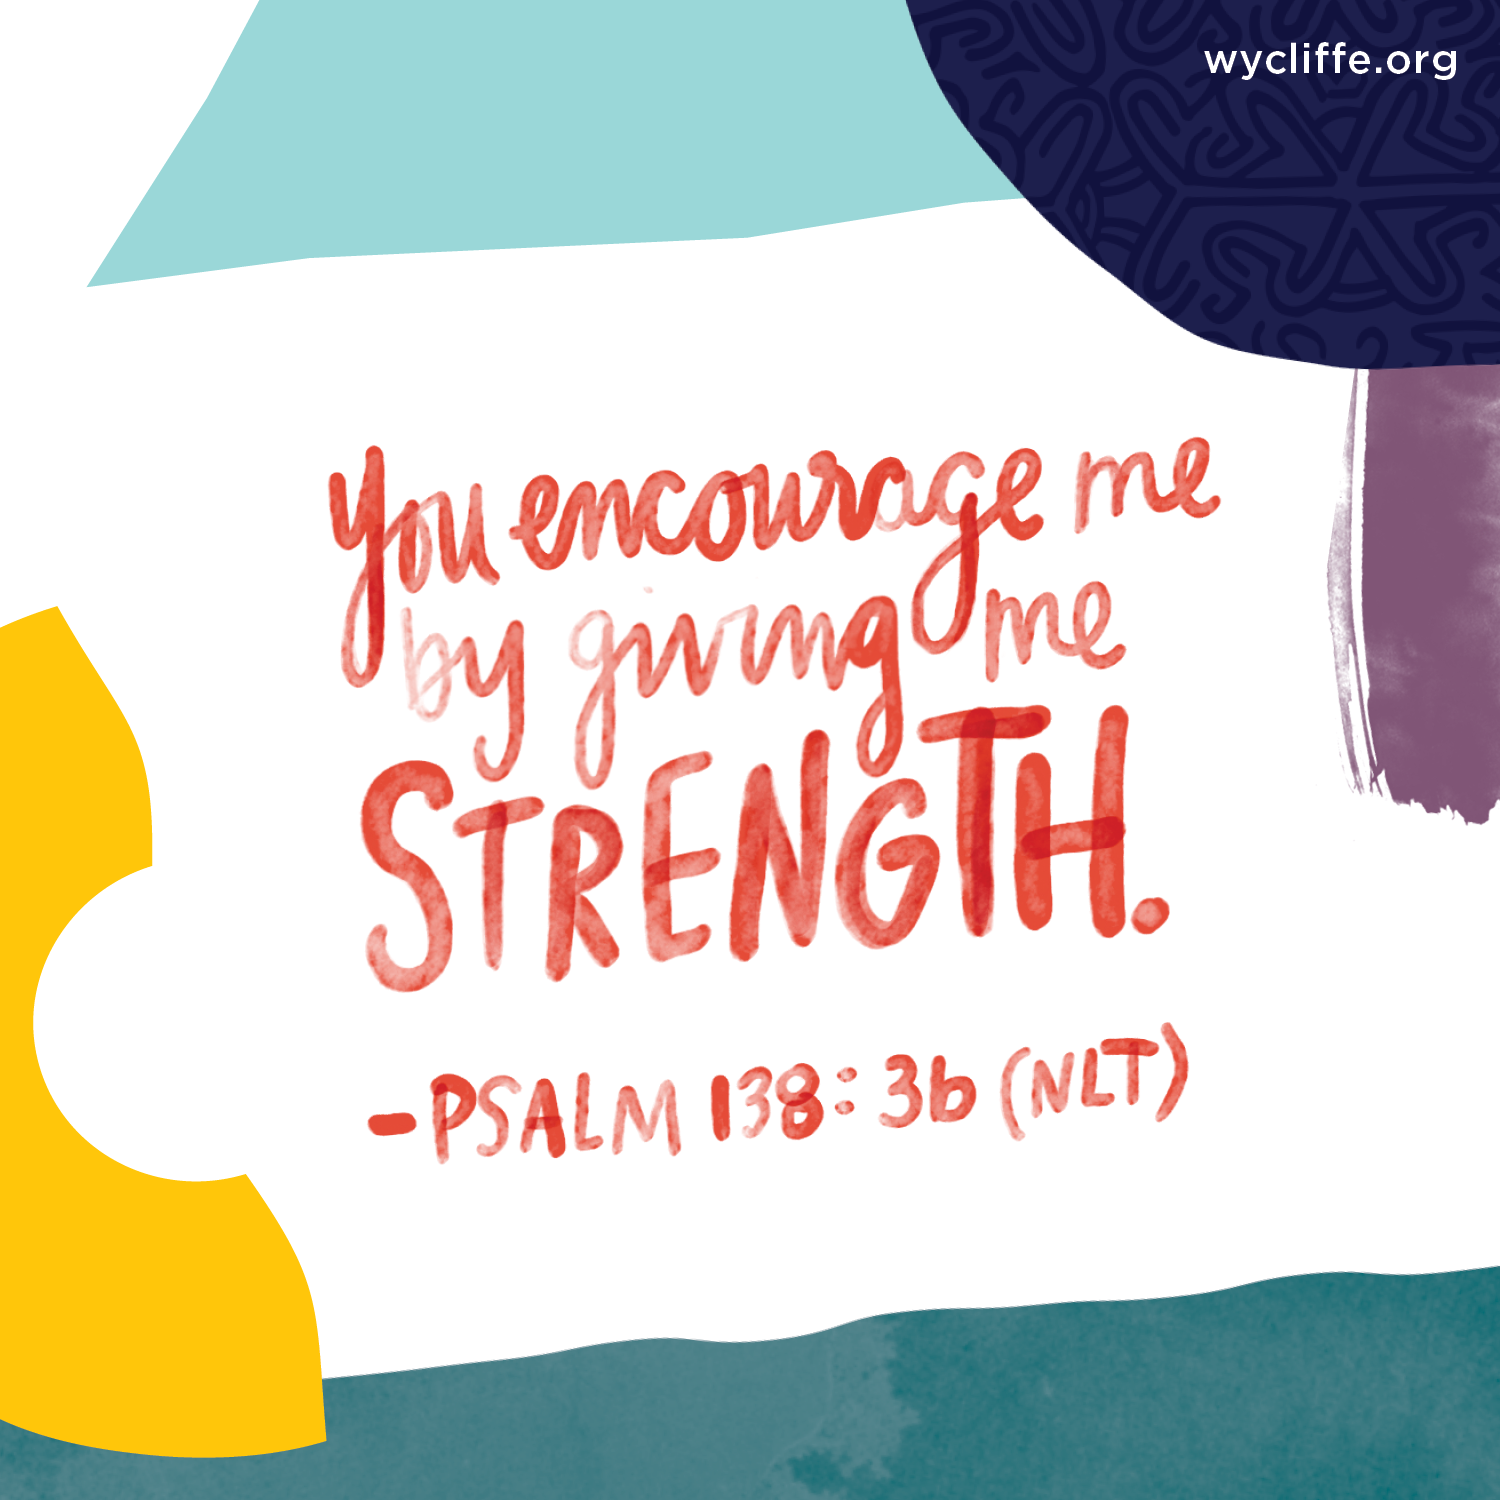 You encourage me by giving me strength. - Psalm 138:3b (NLT)